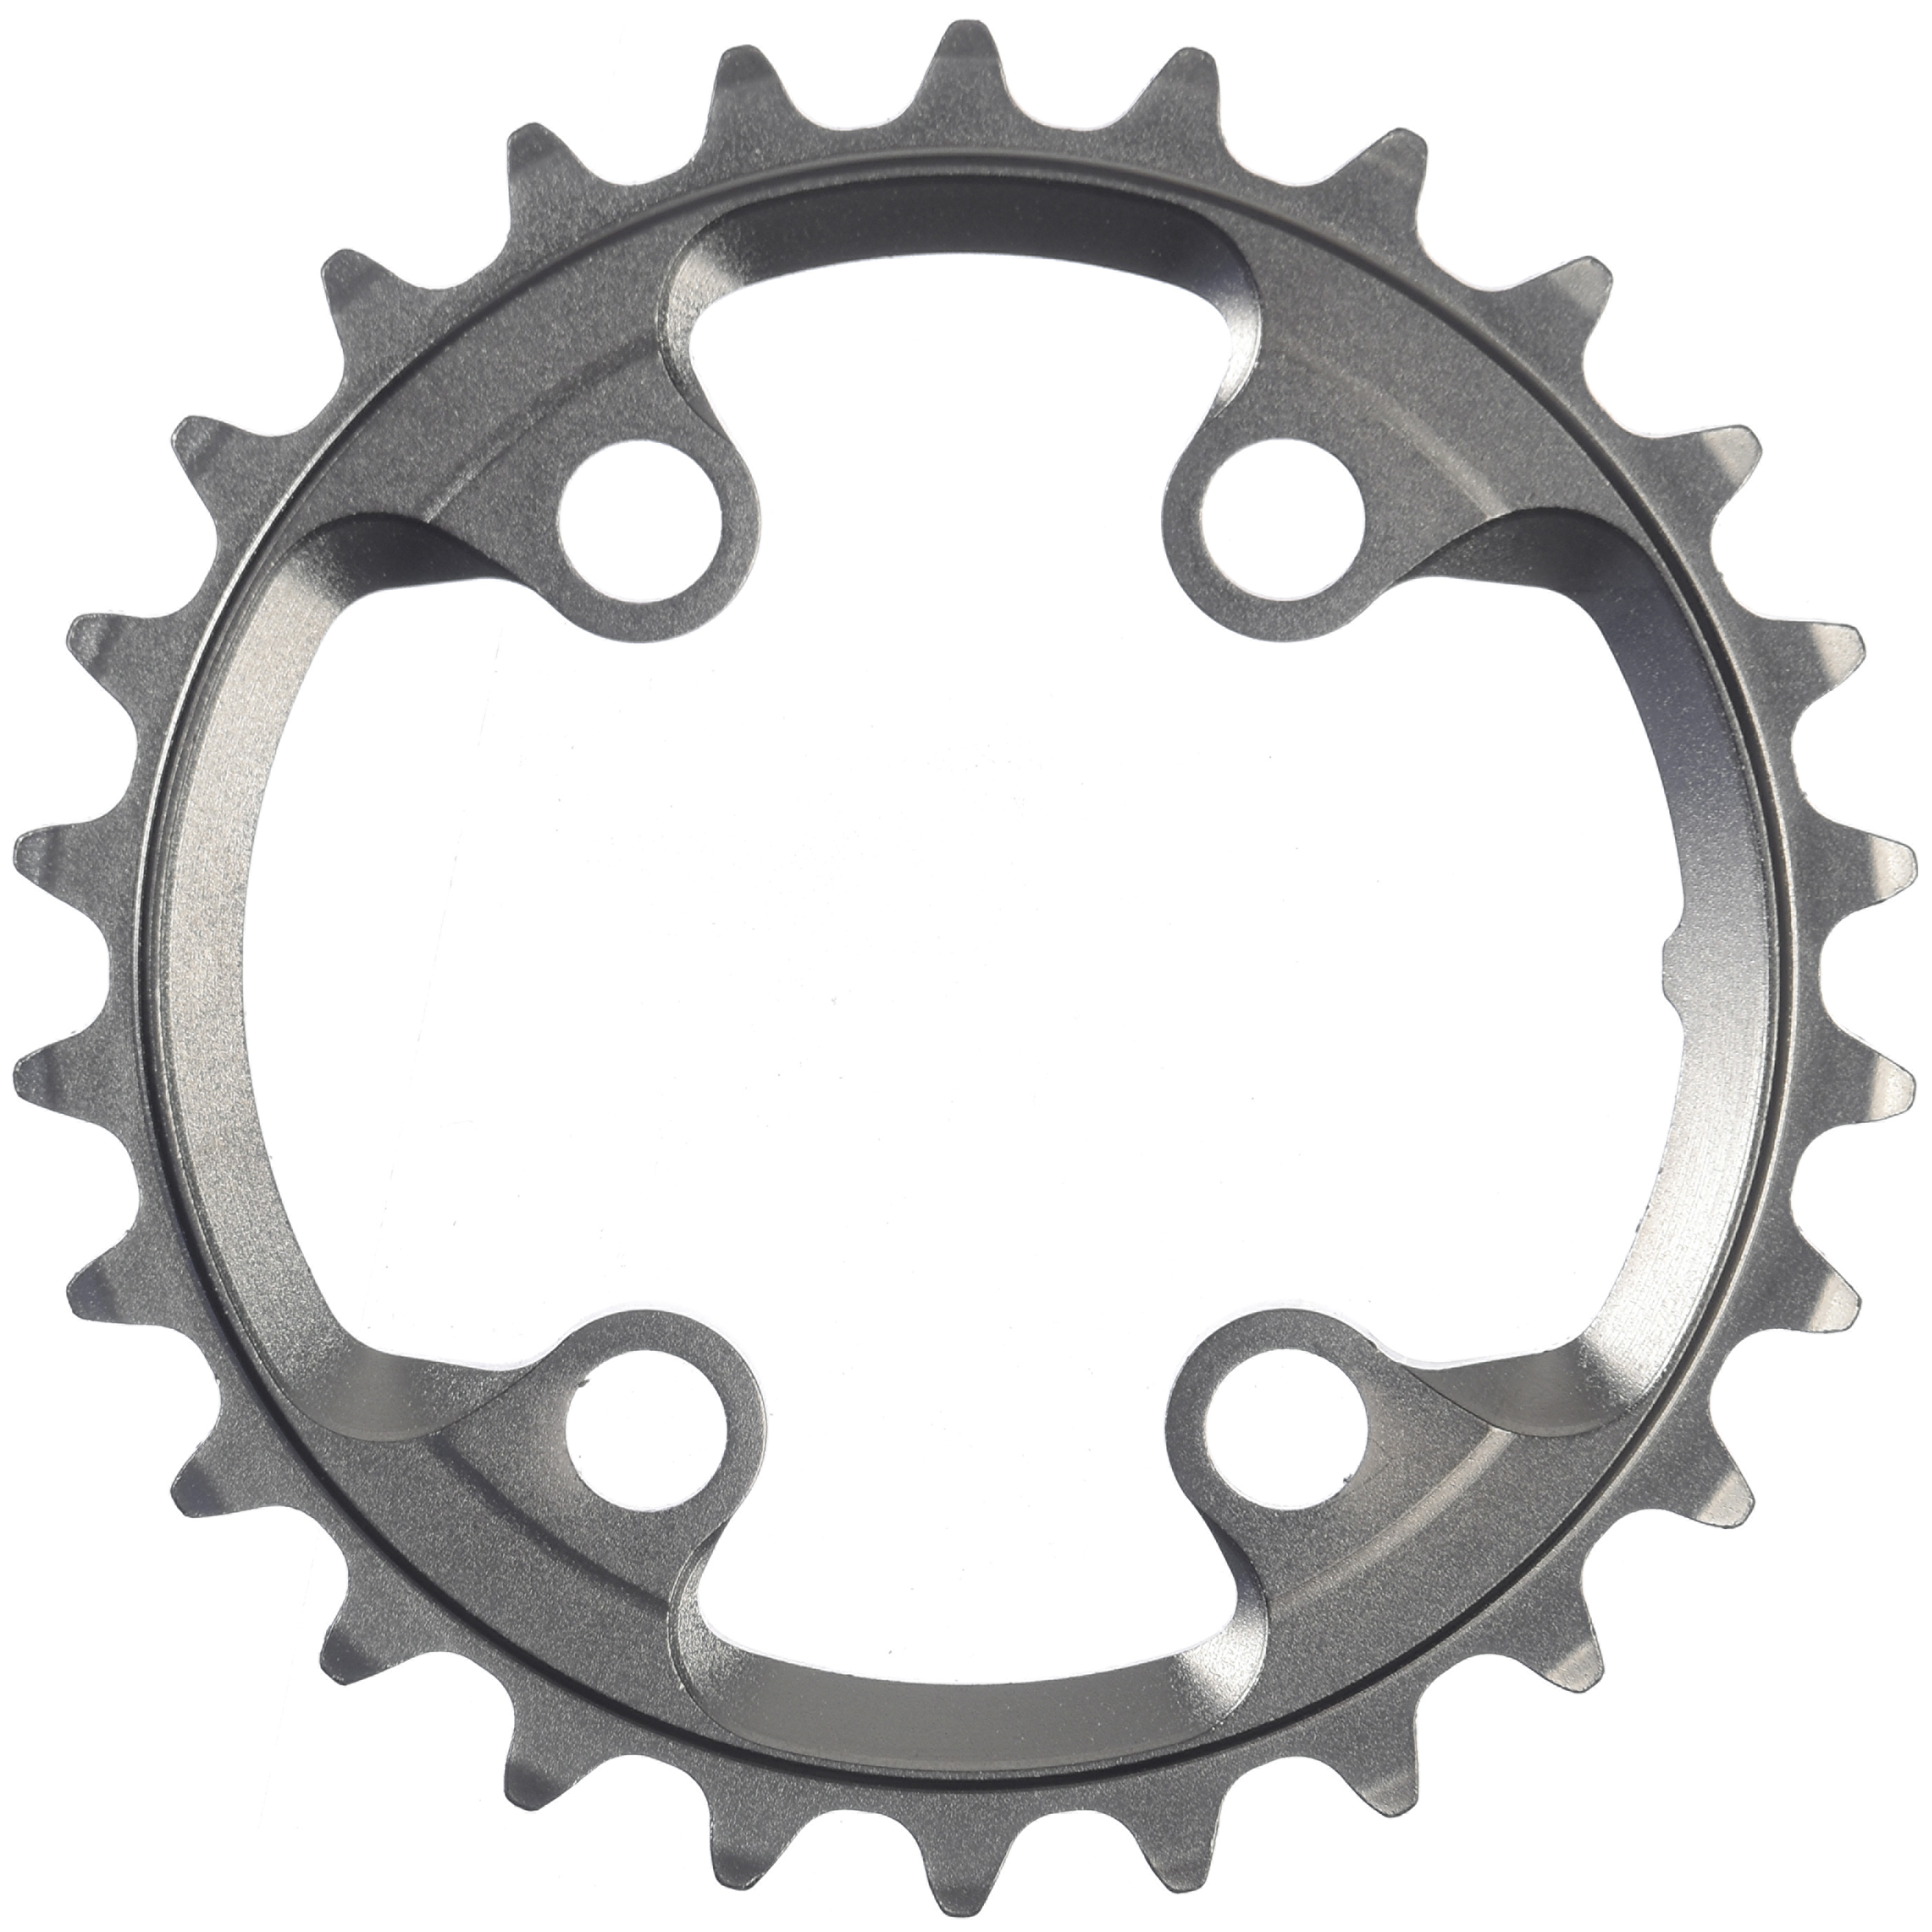 Shimano XTR FCM9000-M9020 11sp Double Chainrings | chainrings_component